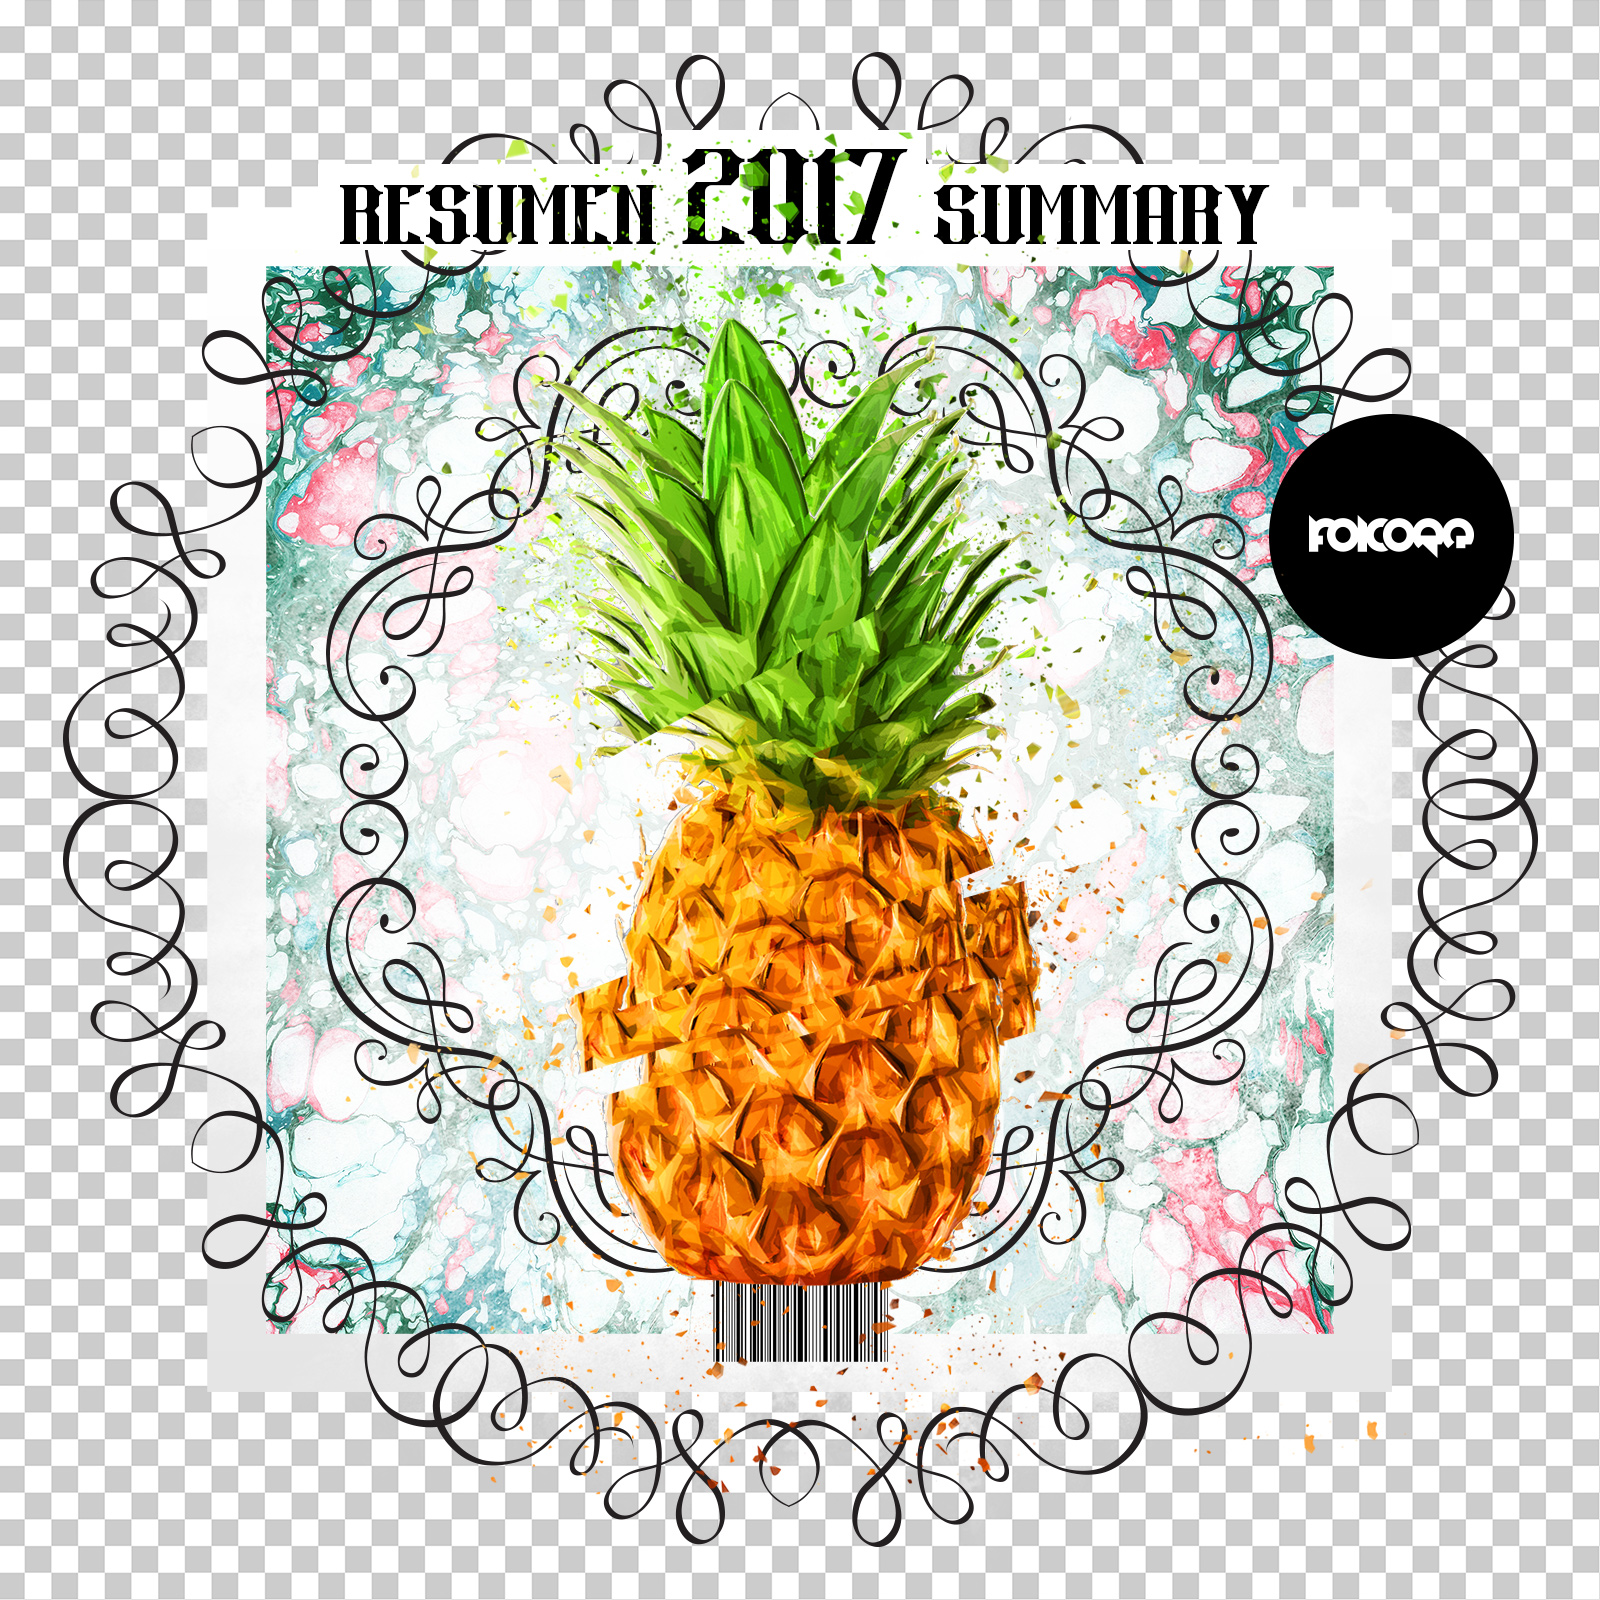 Folcore Records Playlist Releases Summary 2017